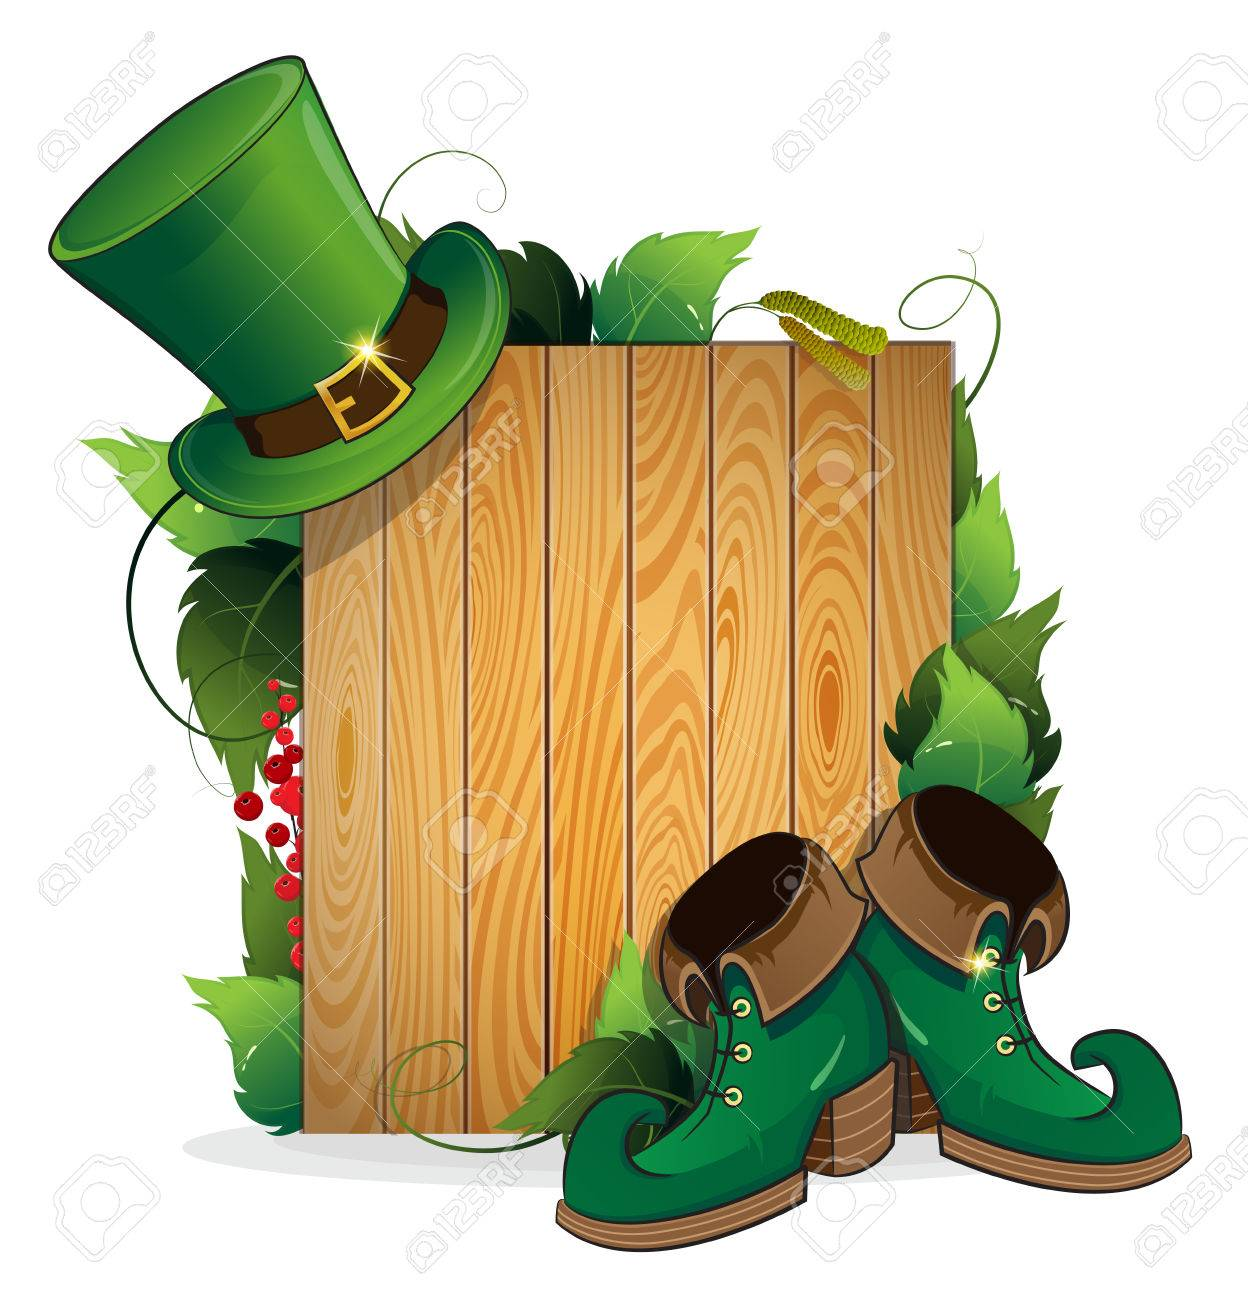 leprechaun shoes and bowler hat on wooden background st